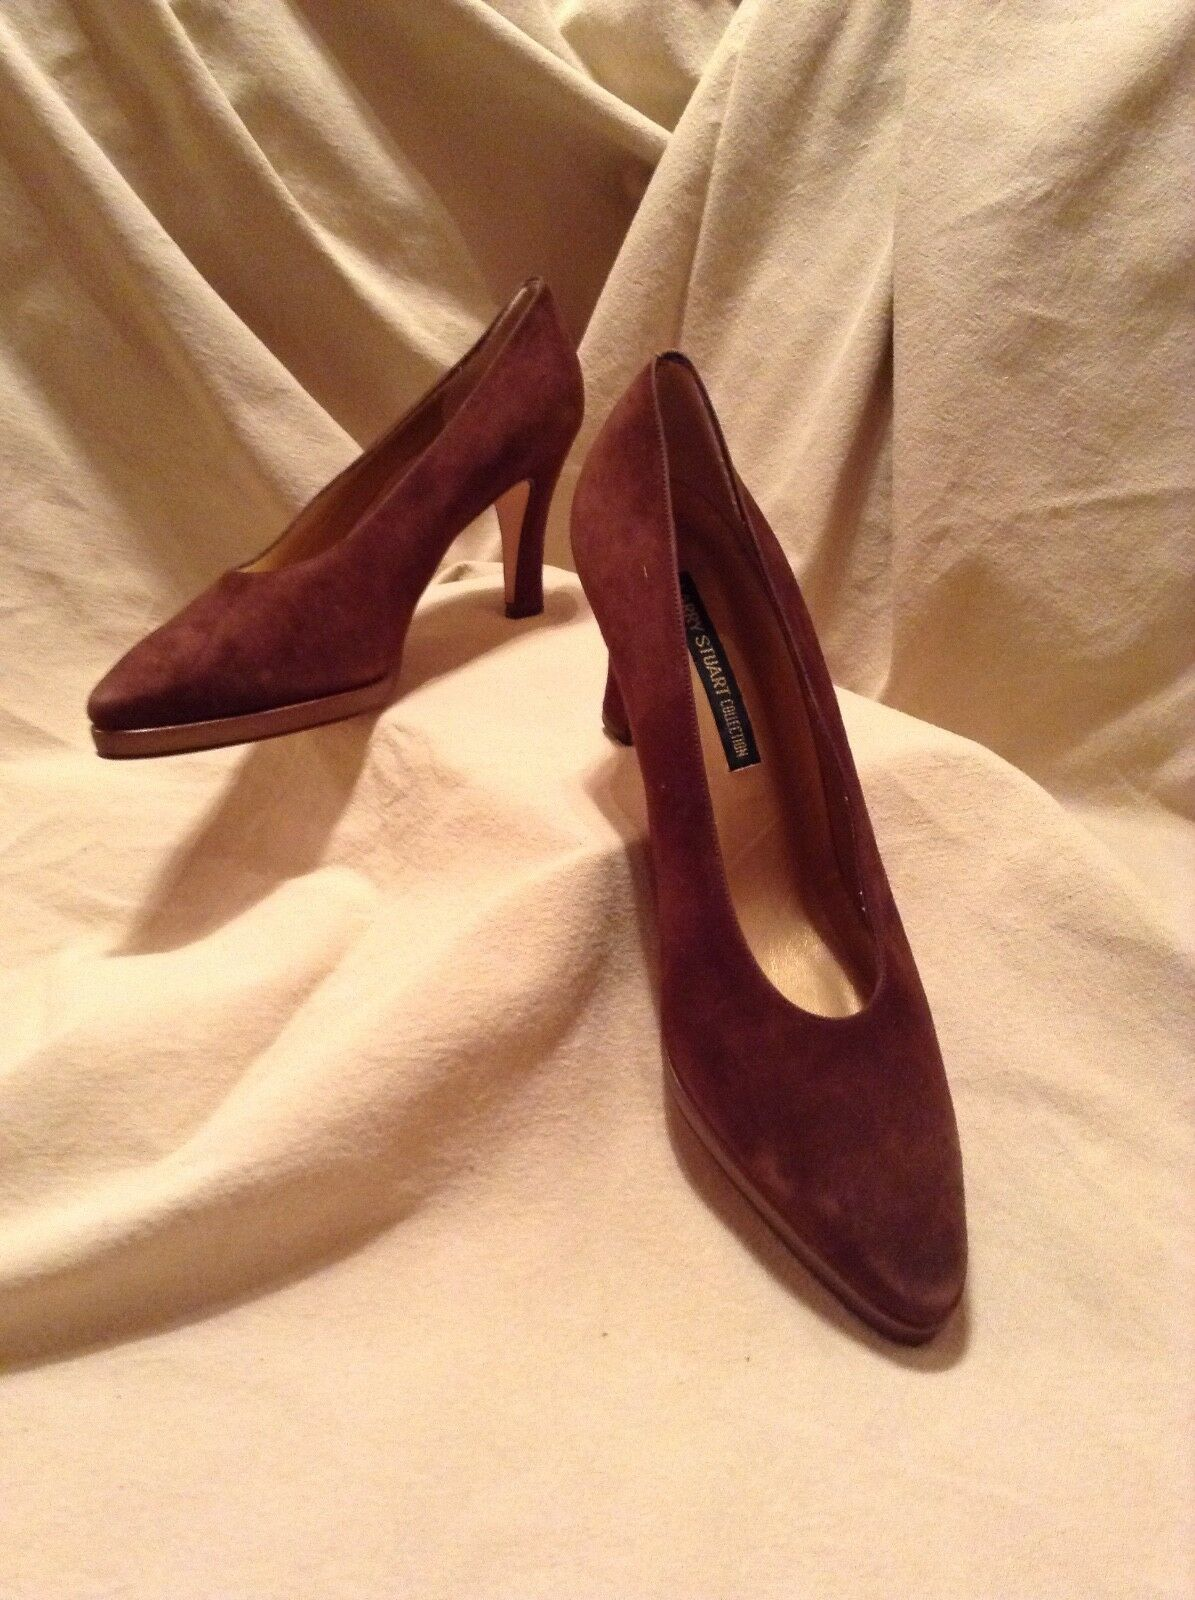 Women Larry Stuart Brown Suede Platform Pumps Size 9 M New.